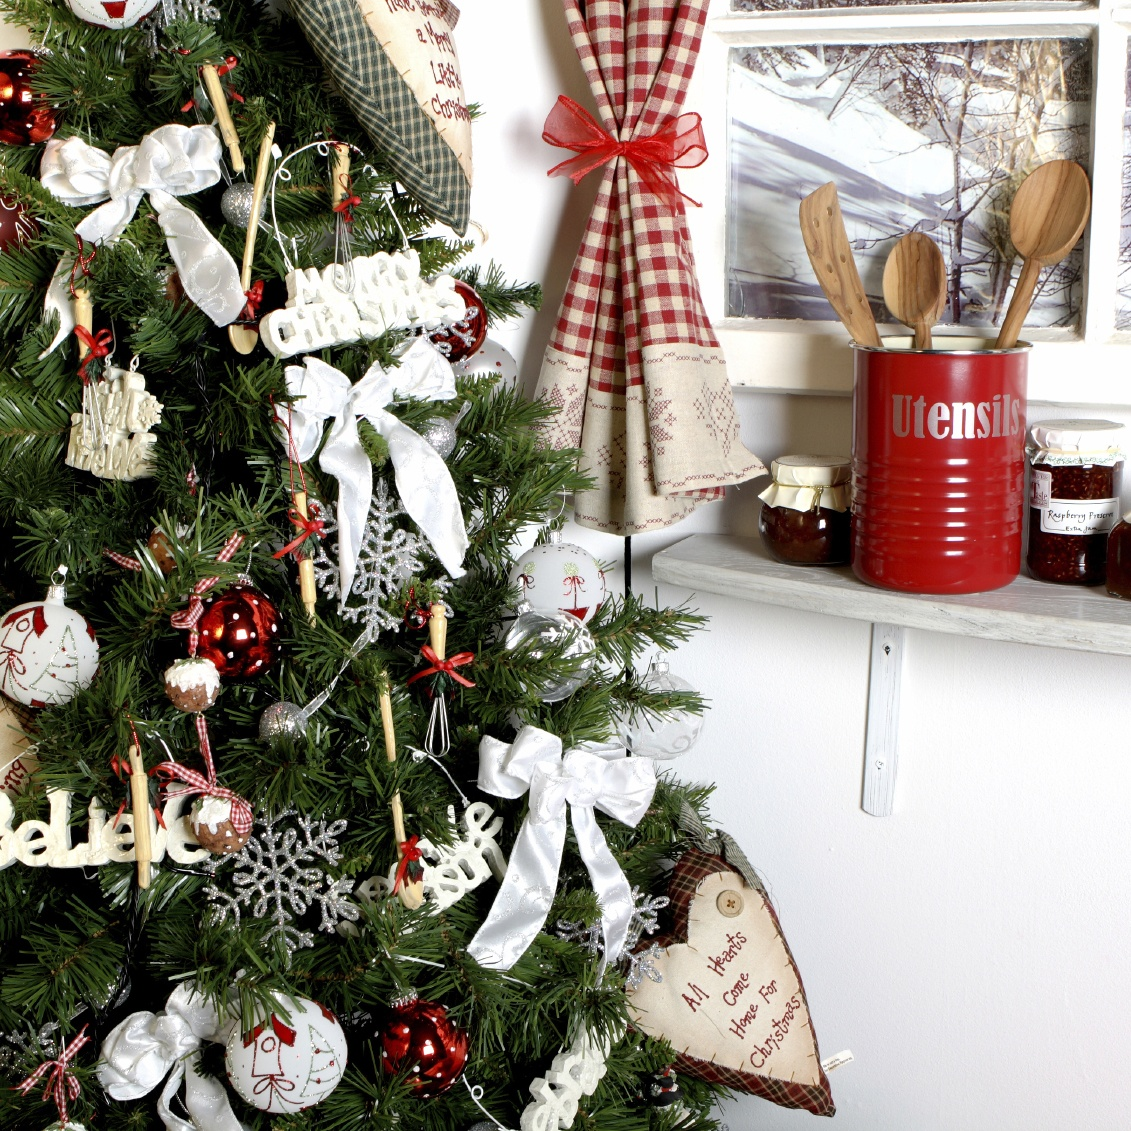 Festive Christmas Tree Ideas